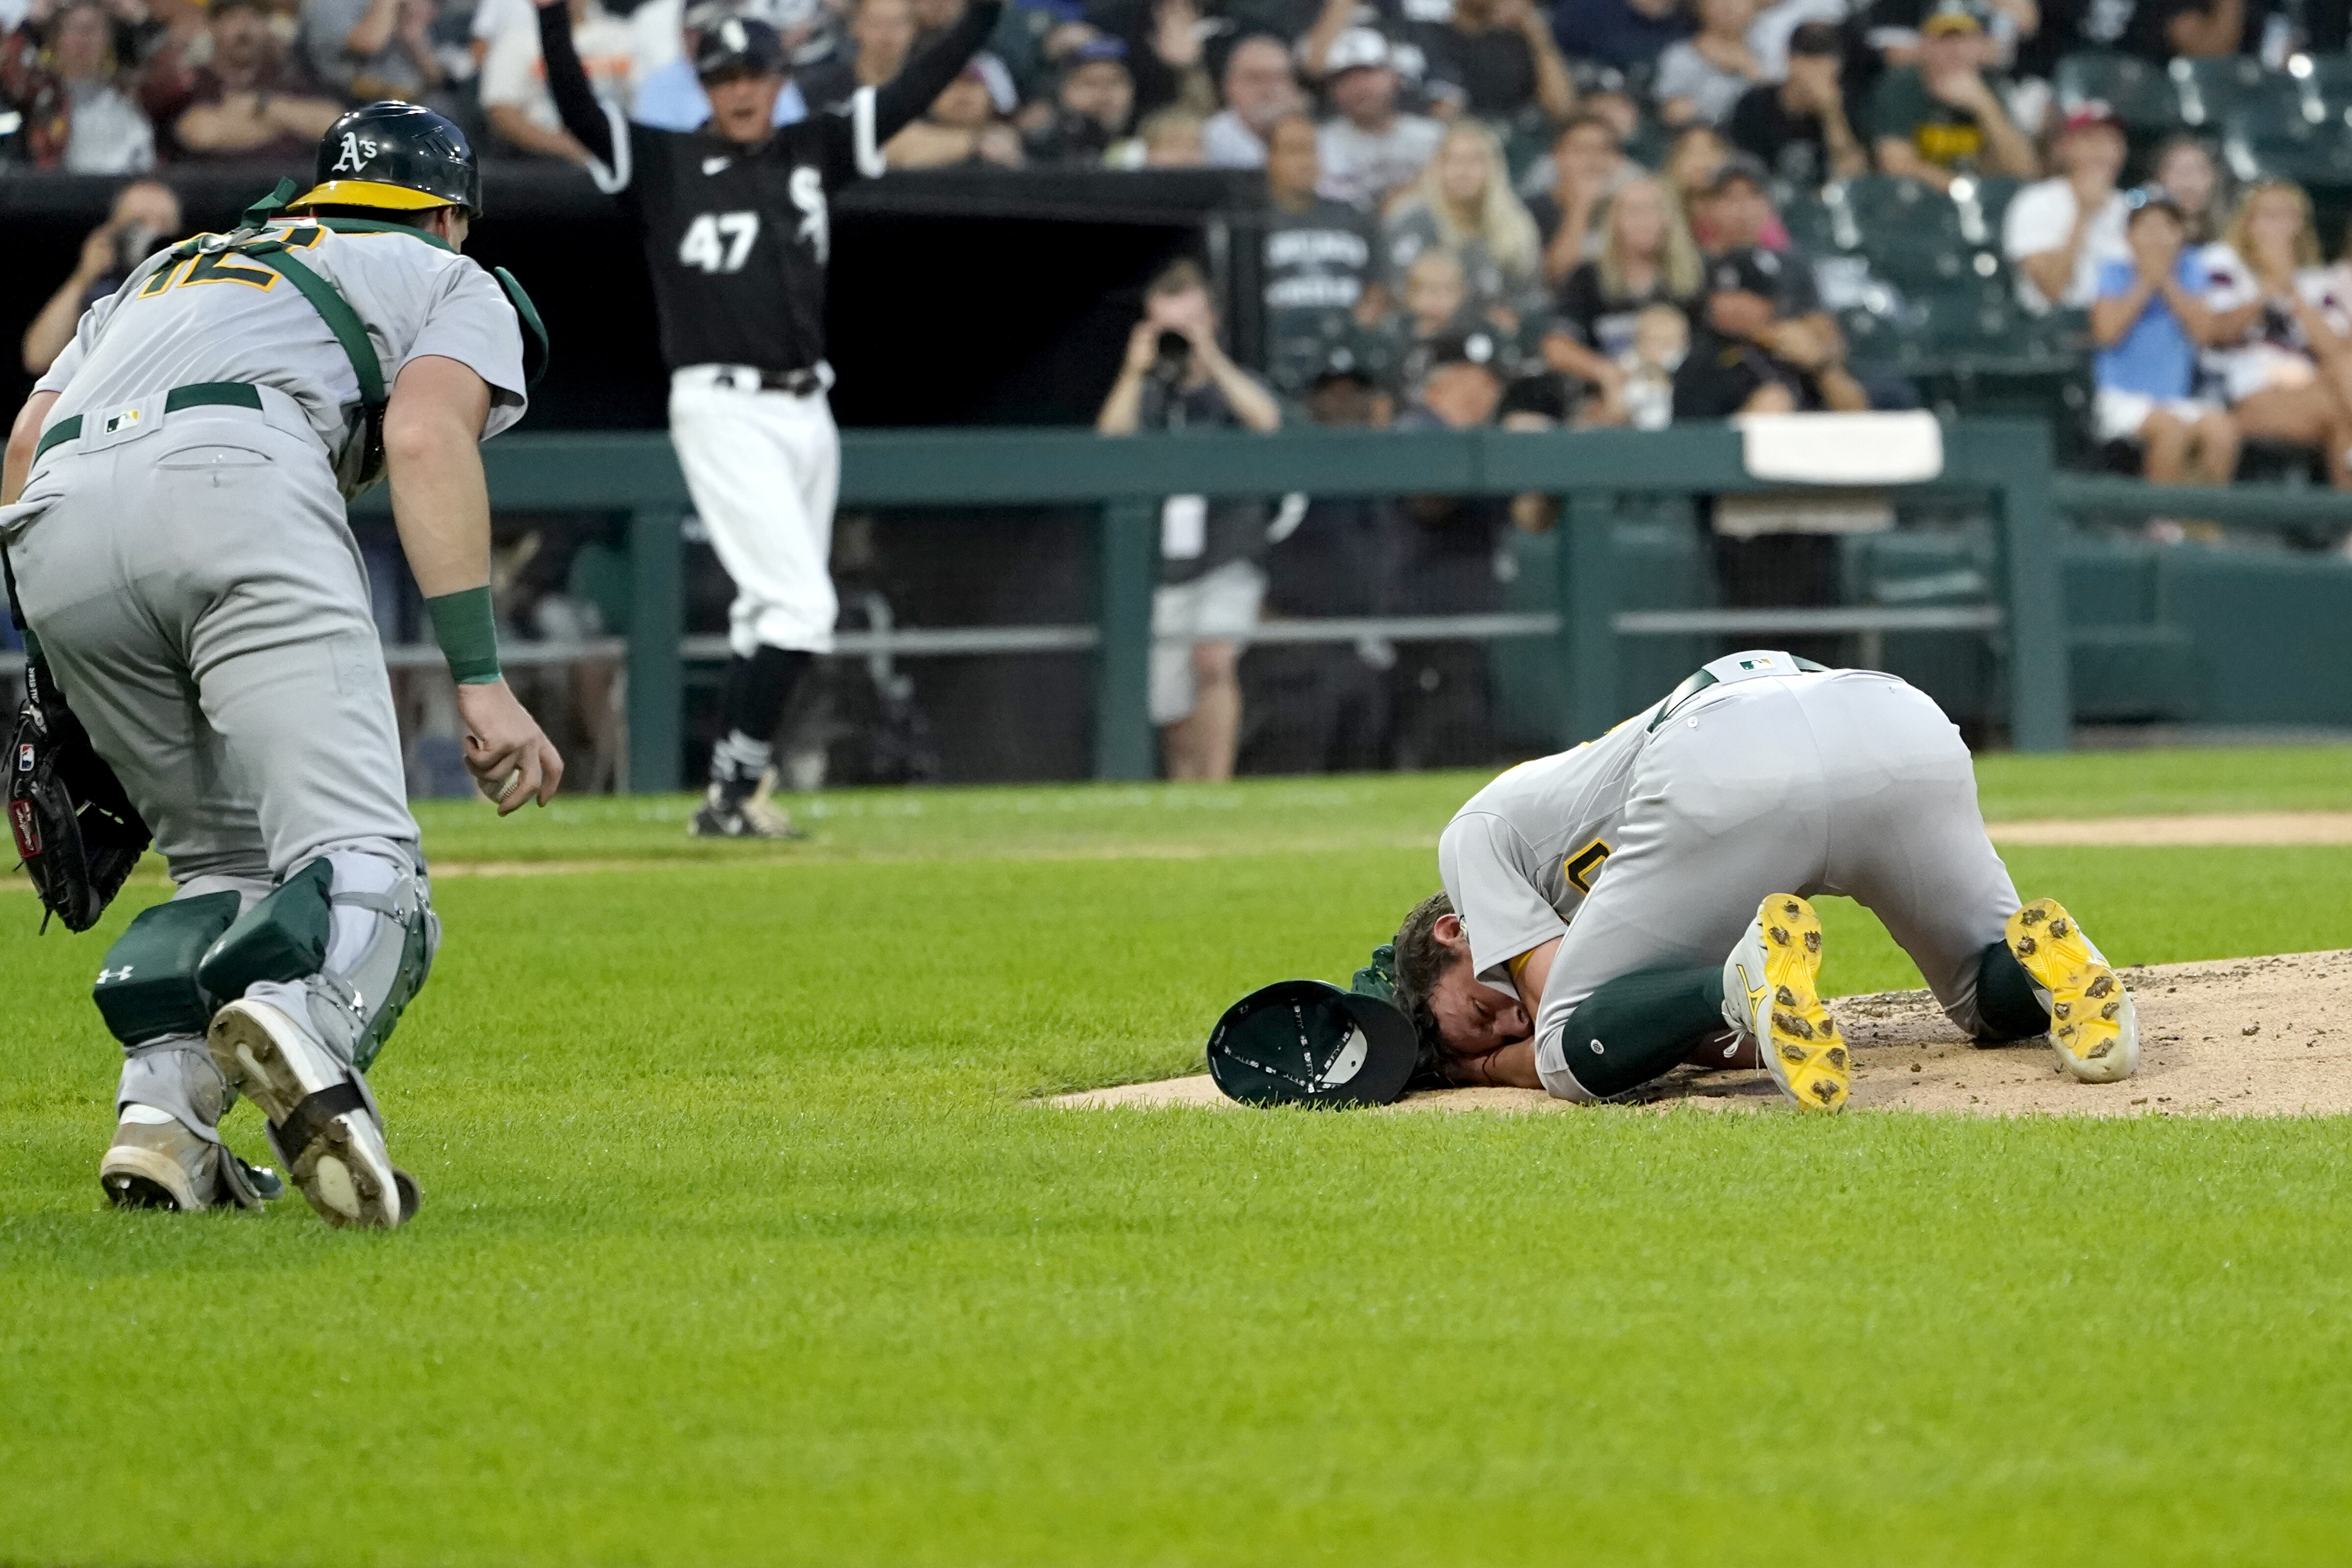 Oakland A's pitcher Chris Bassitt conscious after line drive hit him in his face, manager says